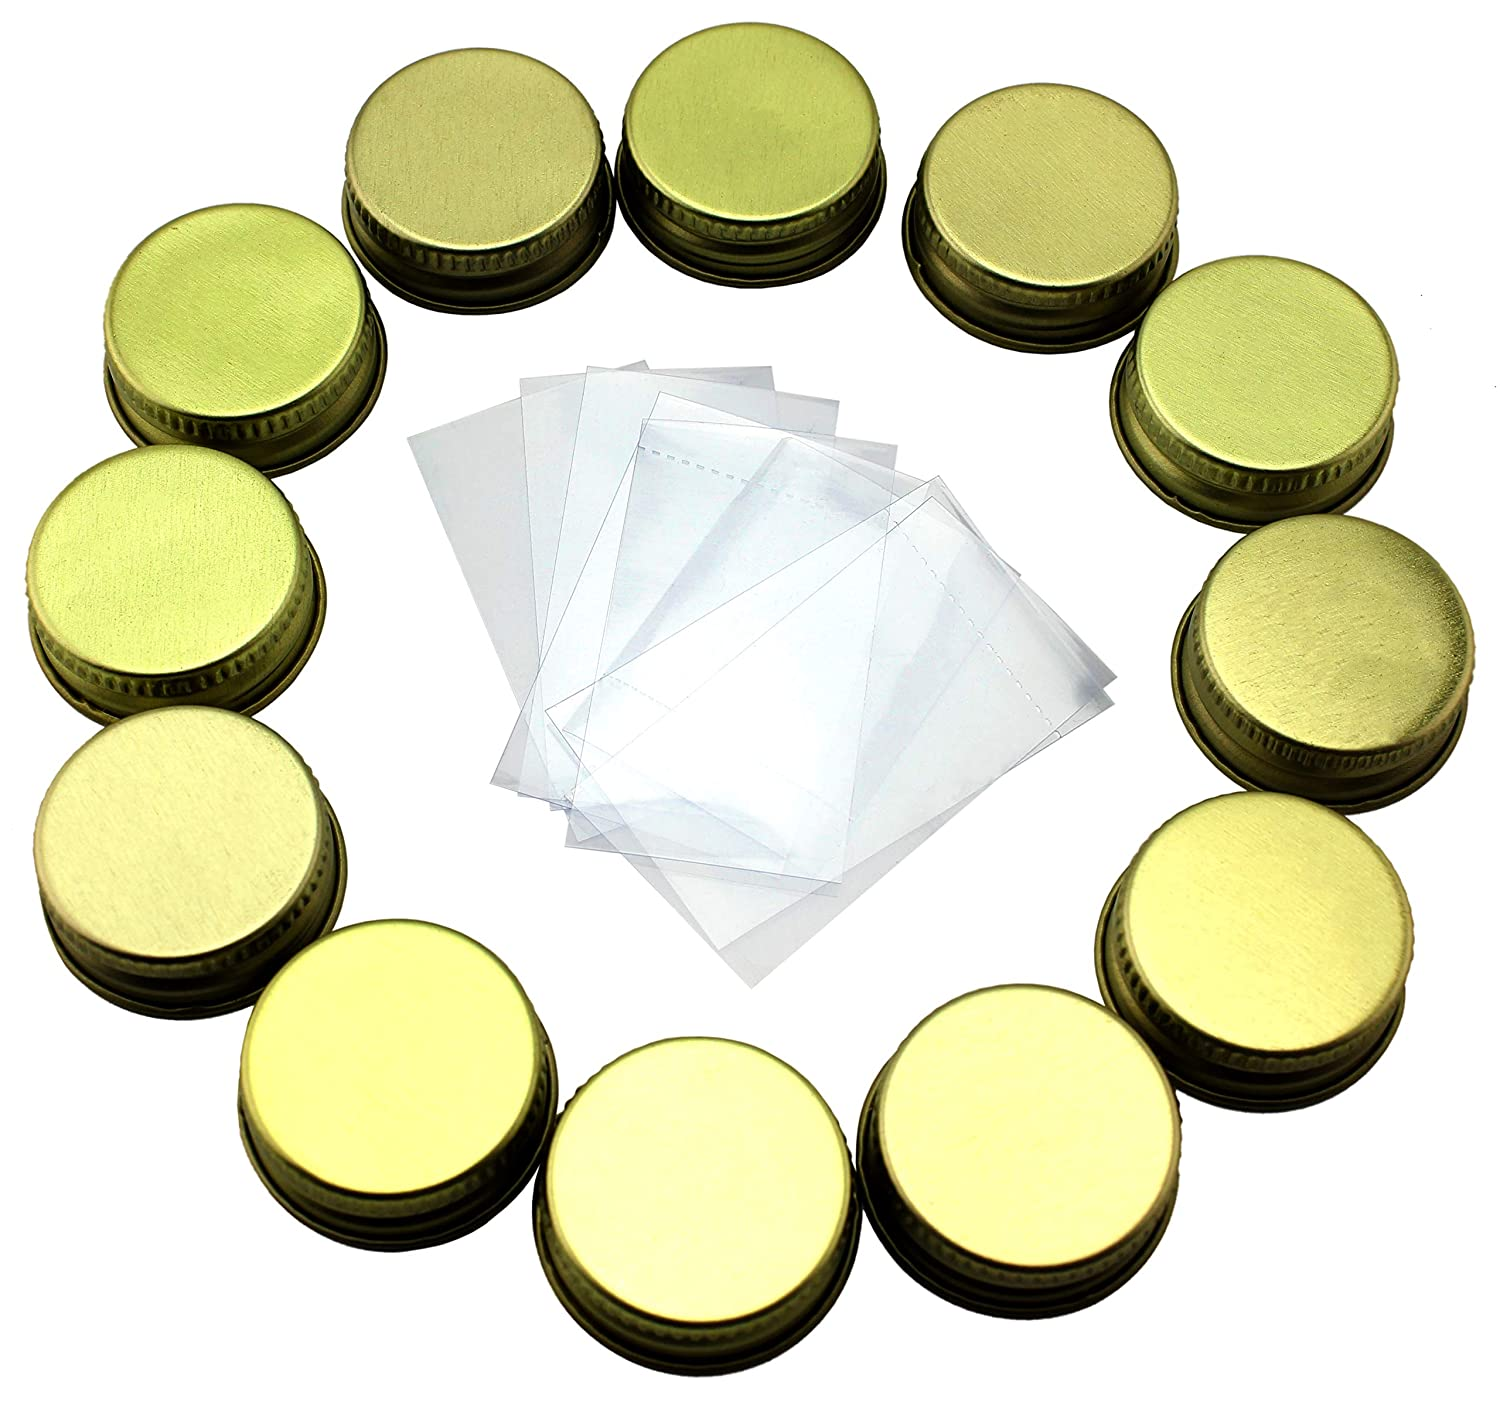 28-400 Replacement Caps & Shrink Bands for Syrup Bottles (12-Pack / 24-Pieces); Fits 8oz & 12oz Glass Syrup Bottles